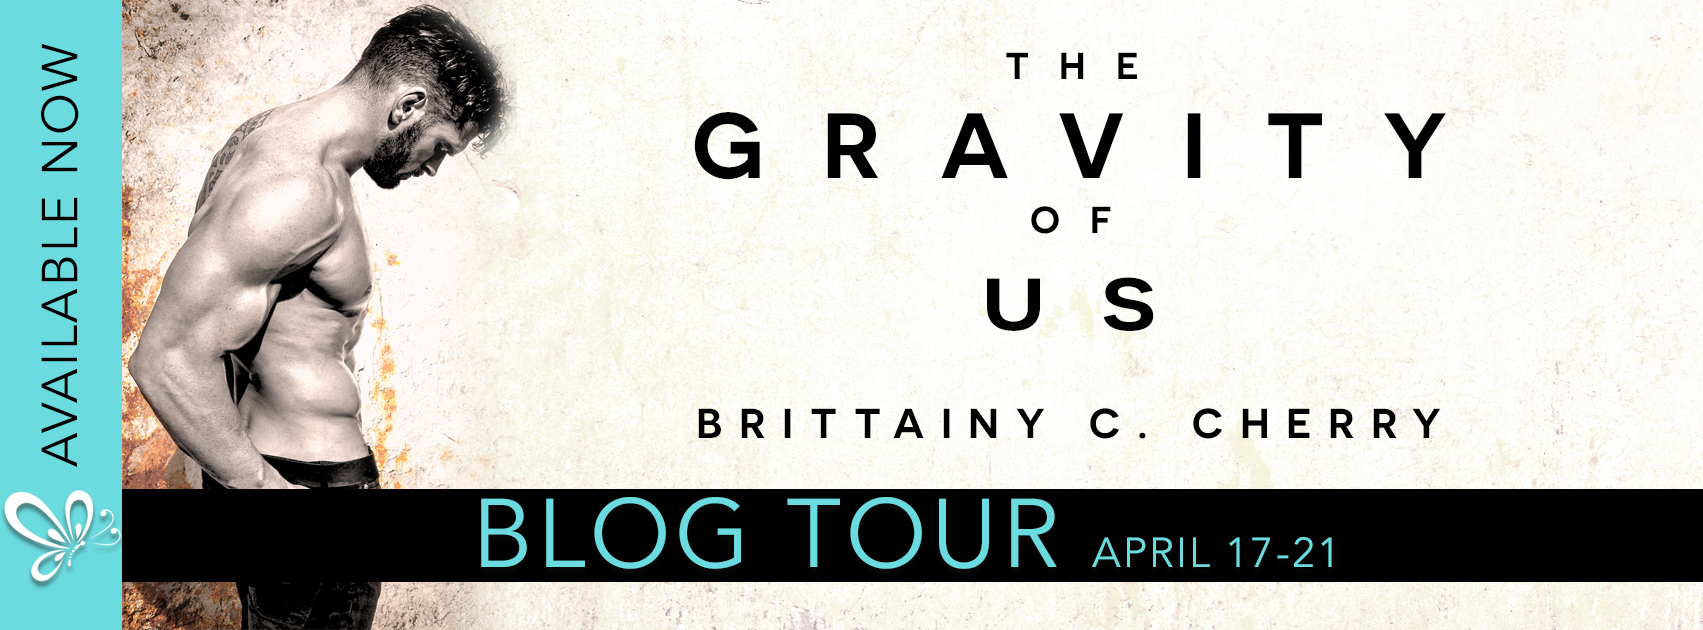 Blog Tour & Review: The Gravity of Us by Brittainy C. Cherry